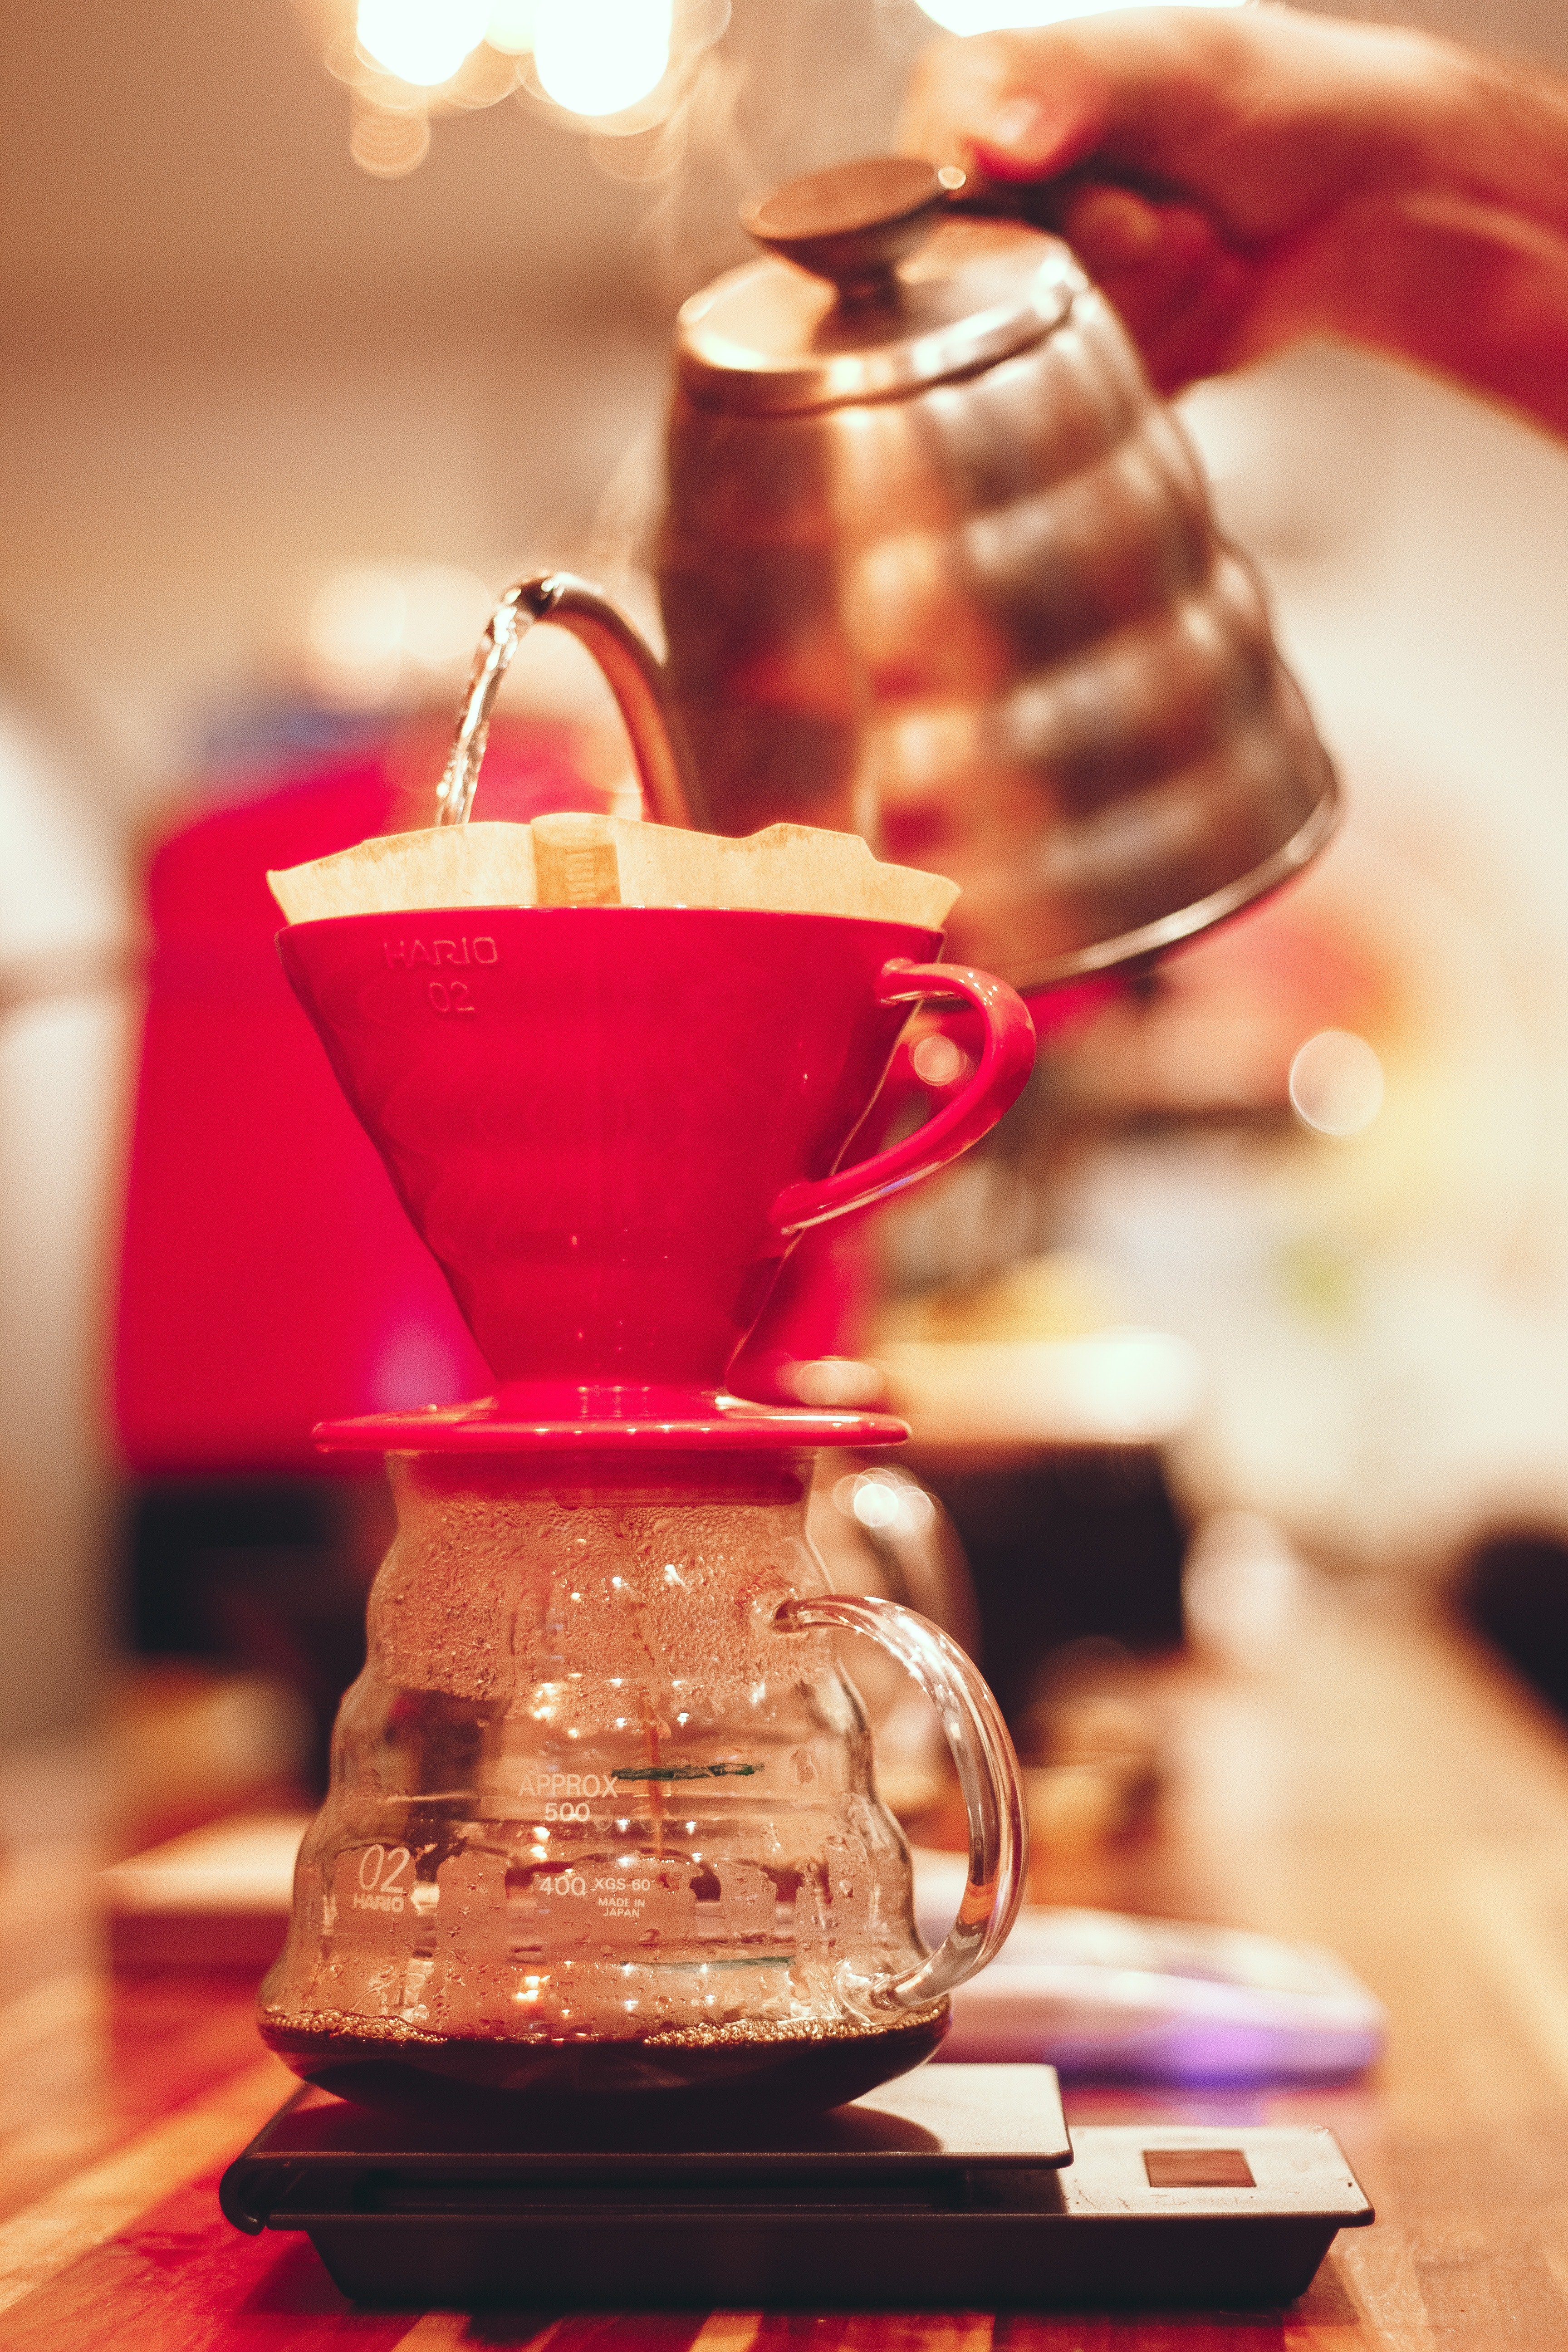 Selective Focus Photography of Coffee Maker, Beverage, Traditional, Teapot, Tea, HQ Photo